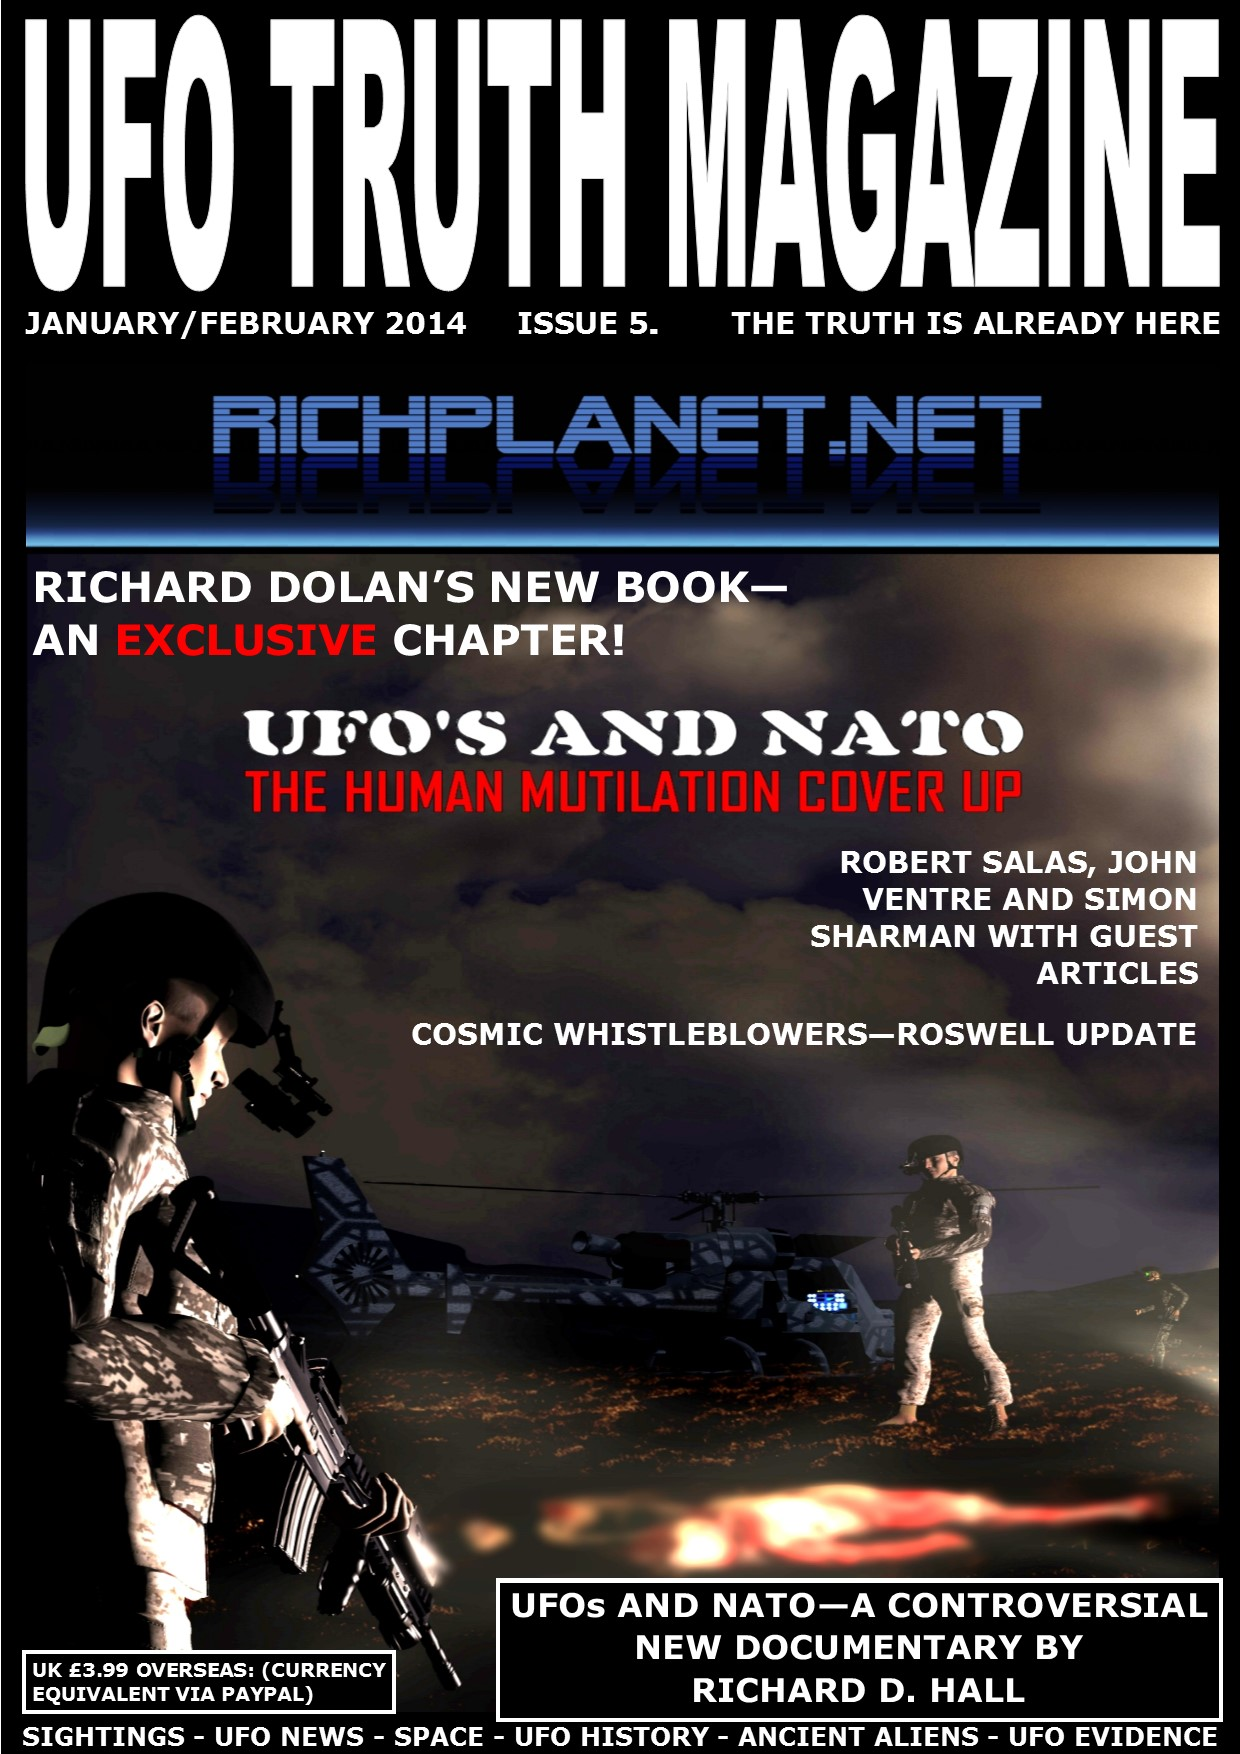 UFO TRUTH MAGAZINE ISSUE 5